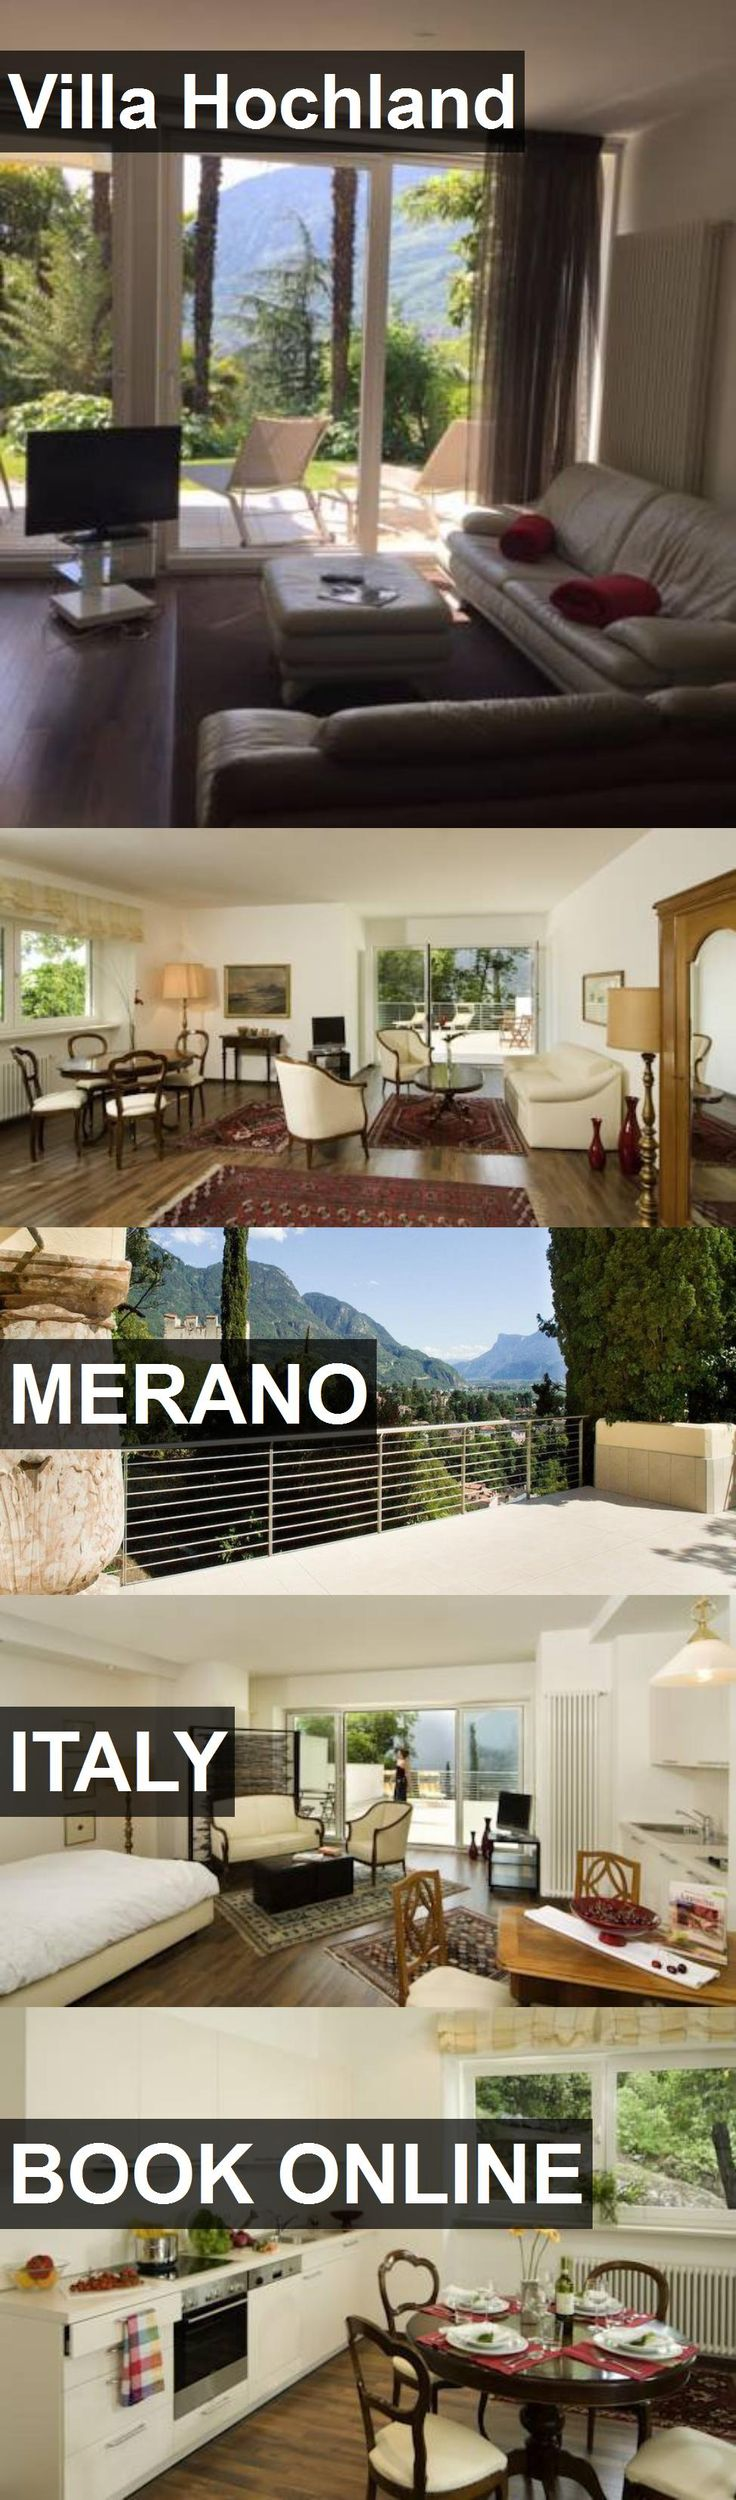 Hotel Villa Hochland in Merano, Italy. For more information, photos, reviews and best prices please follow the link. #Italy #Merano #travel #vacation #hotel